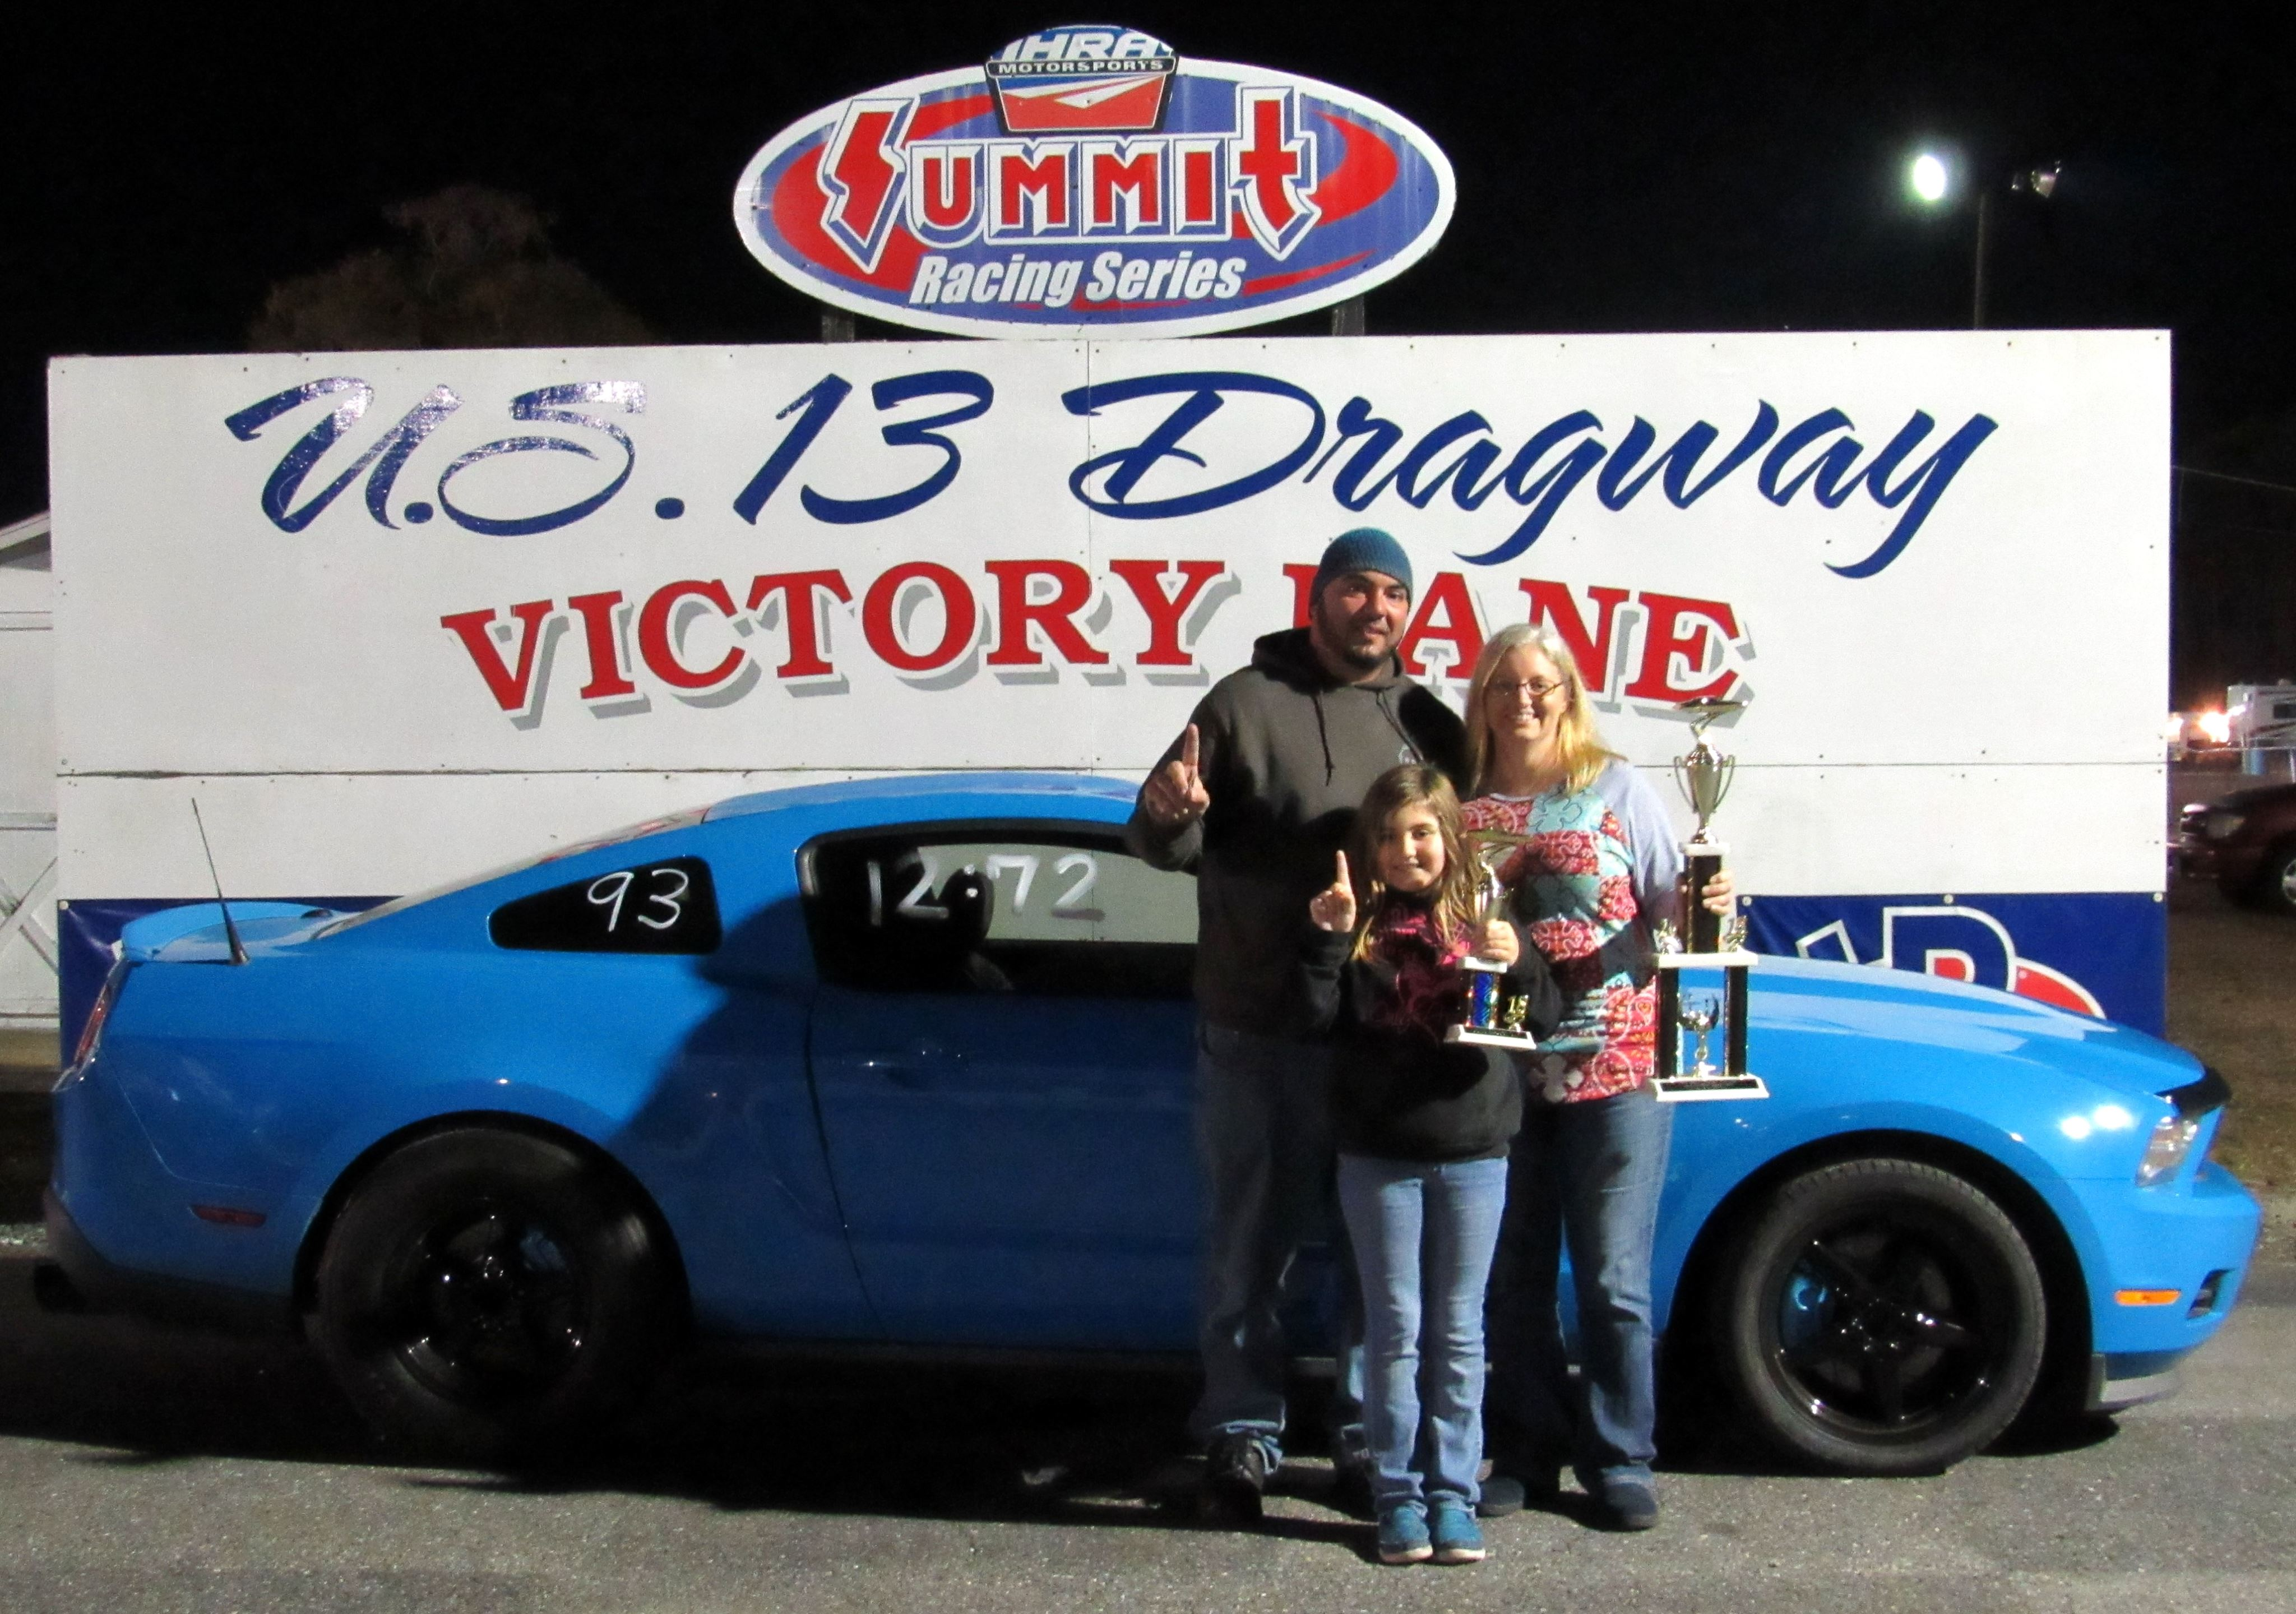 U.S. 13 Dragway Report – Monday November 5, 2018